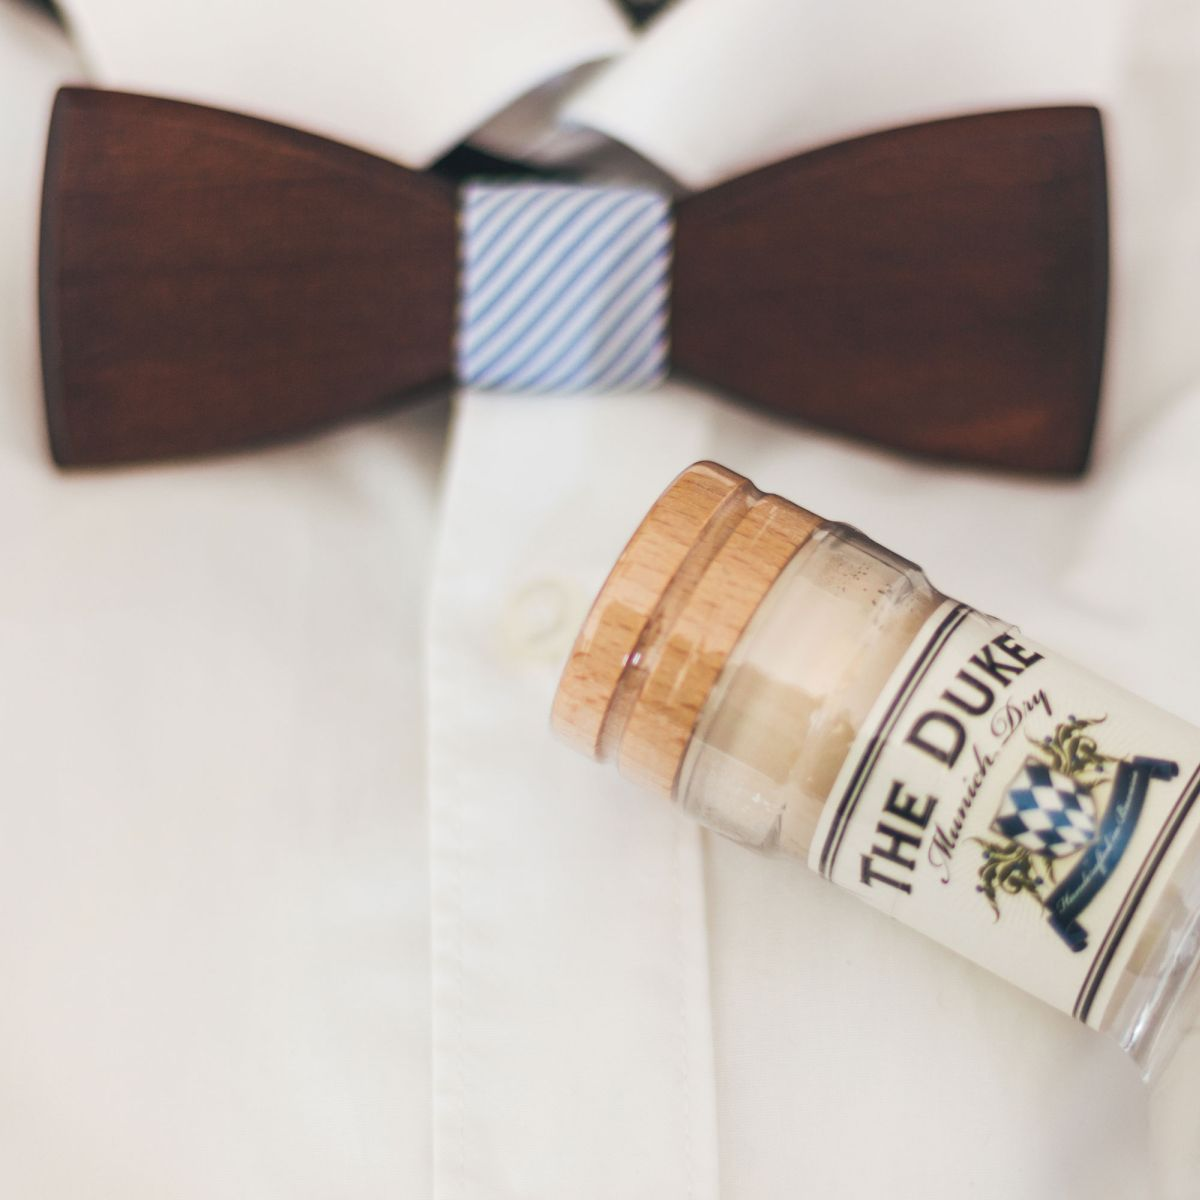 BeWooden x THE DUKE Gentlemen's Set: THE DUKE Munich Dry Gin und Holzfliege